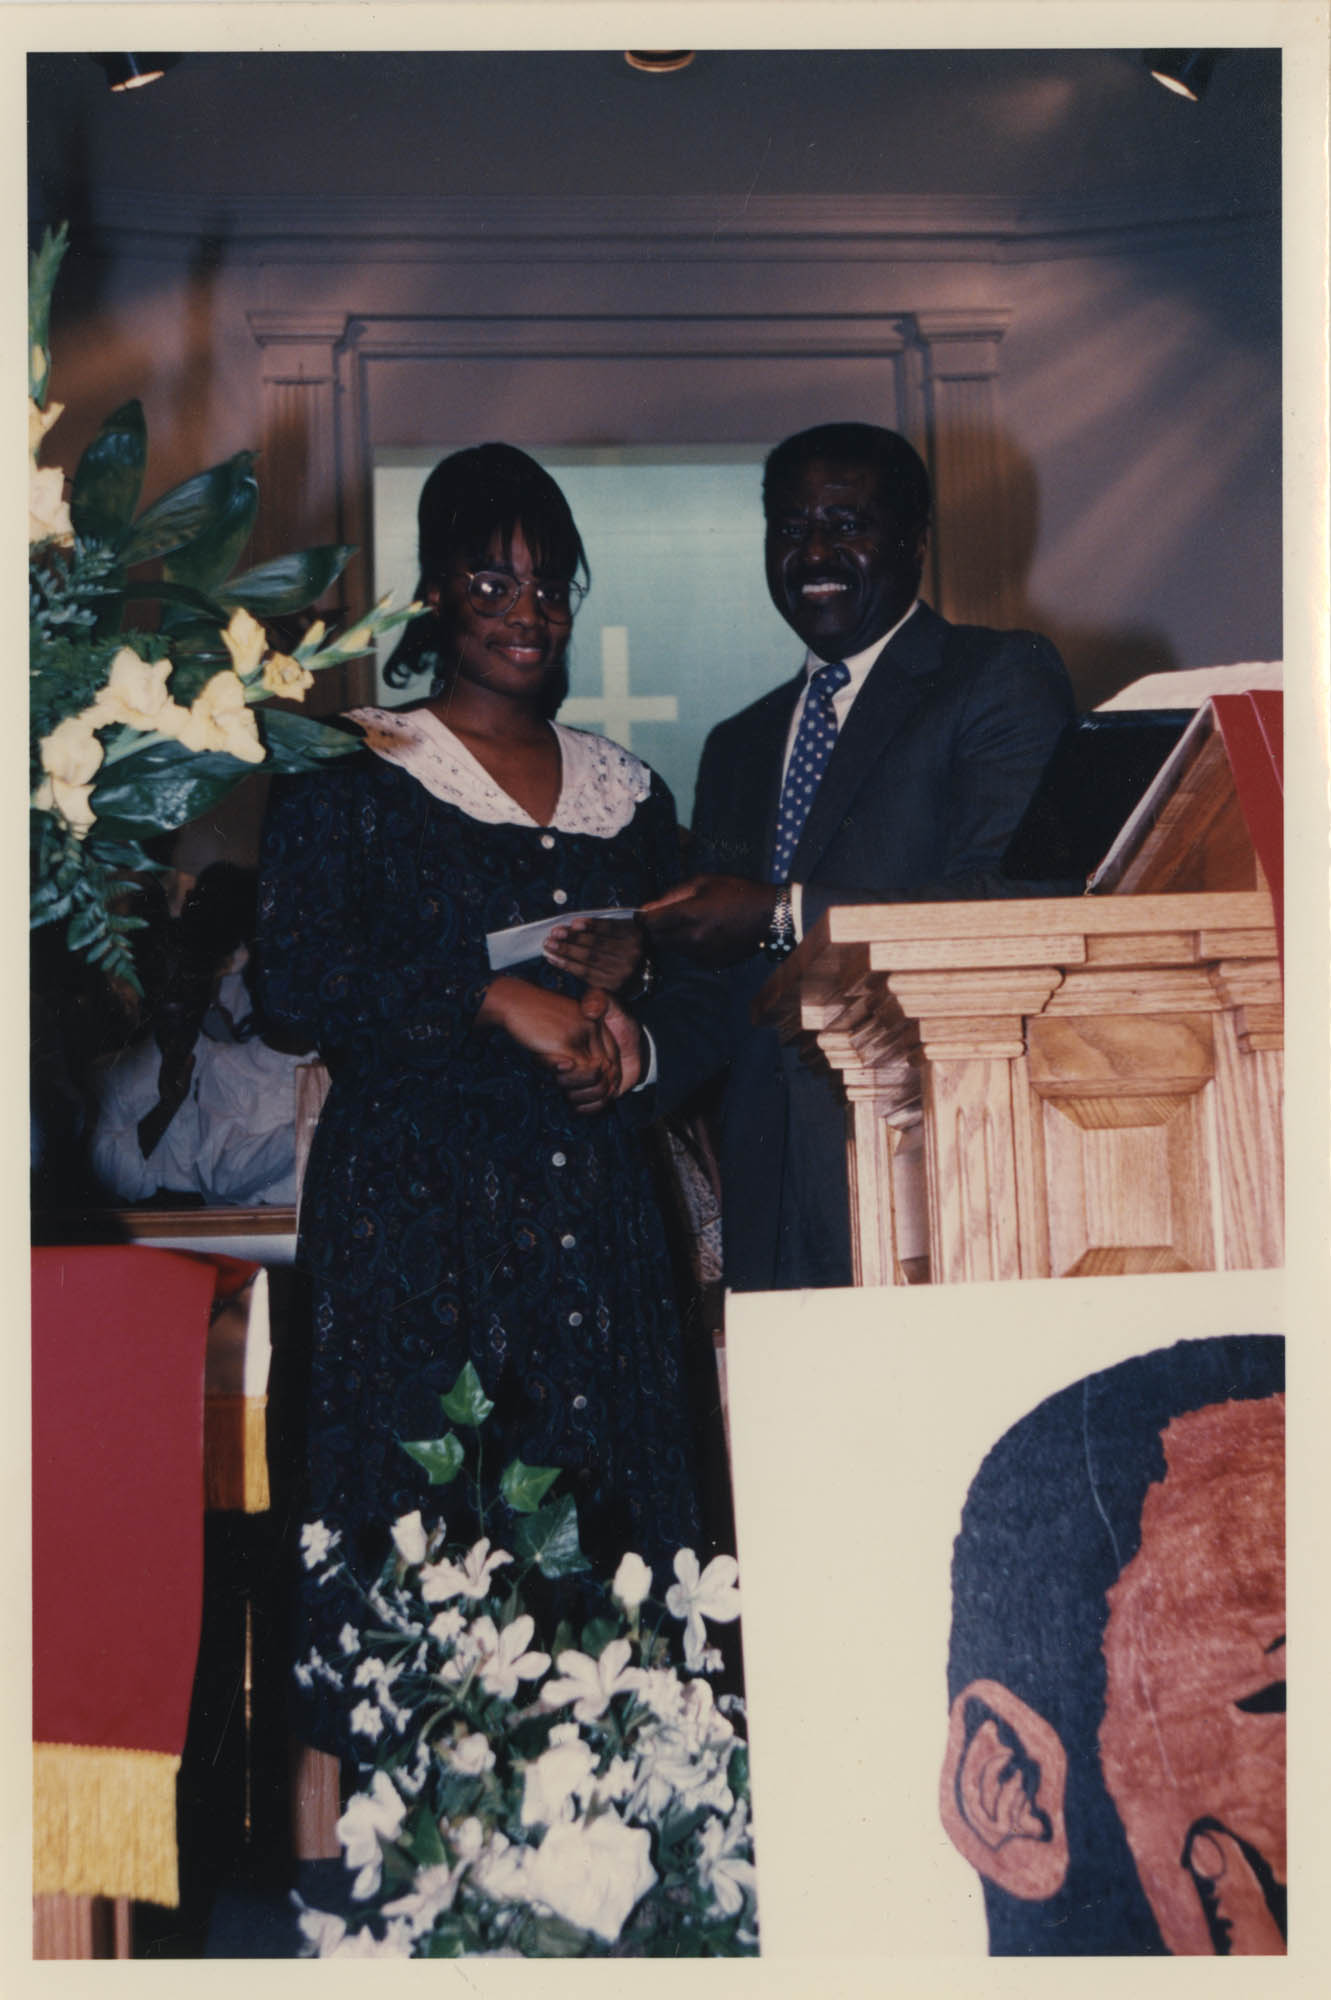 Photograph of Two People Behind a Podium